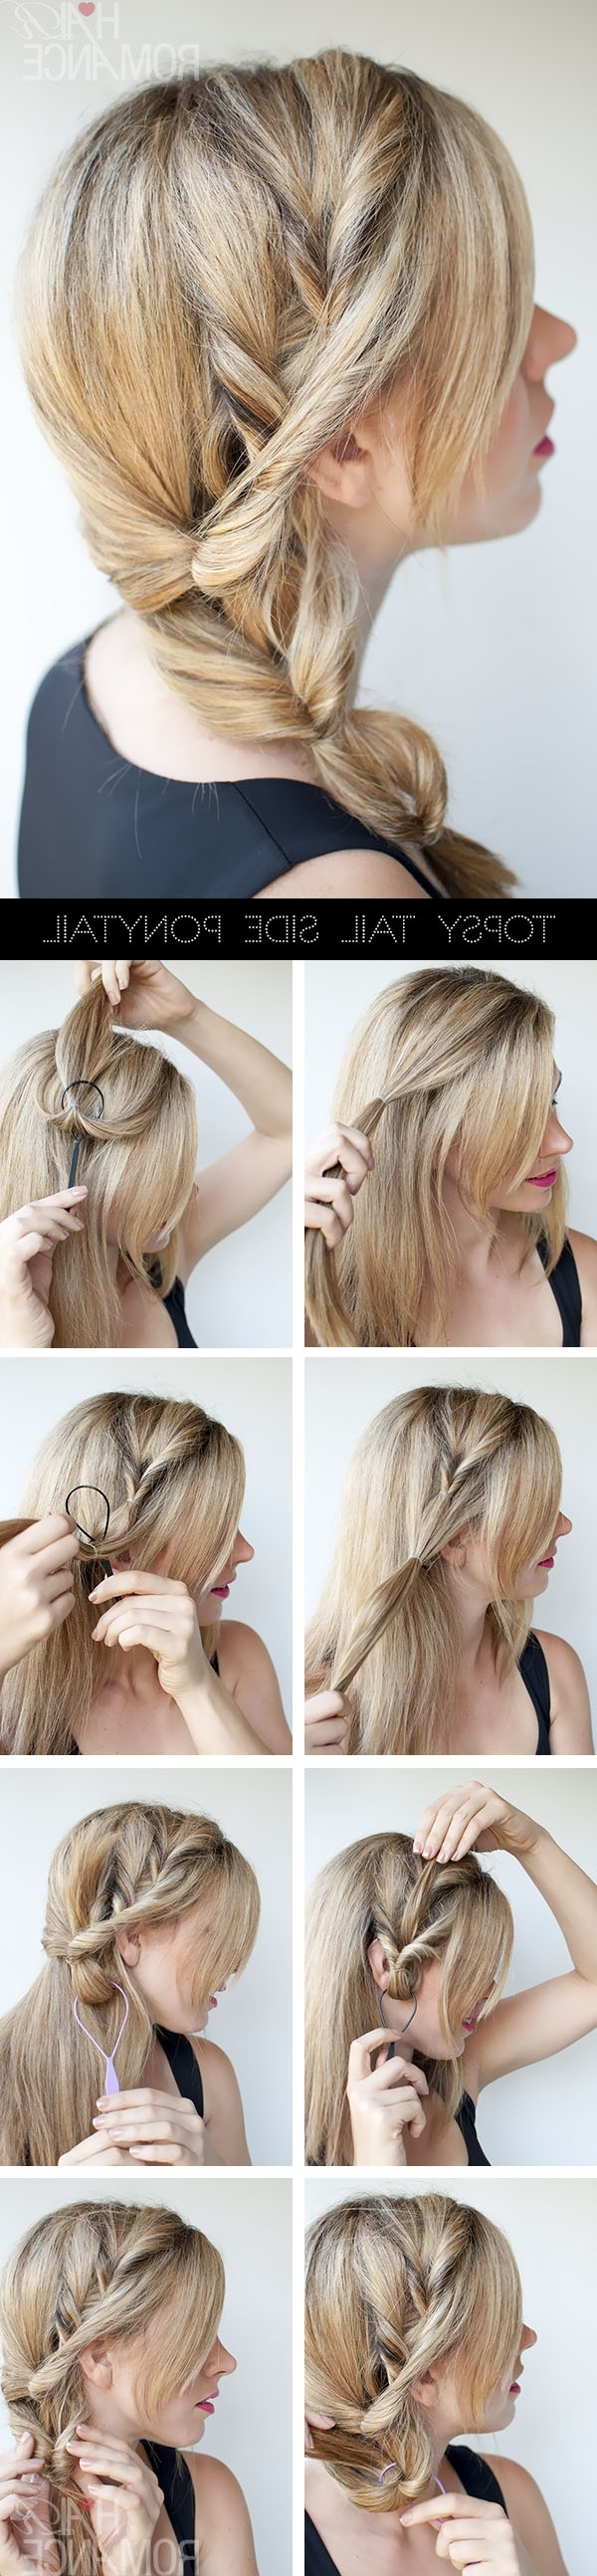 Topsy Tail Ponytail Tutorial – The No Braid Side Braid Hairstyle Within Most Popular Updo Pony Hairstyles With Side Braids (Gallery 20 of 20)